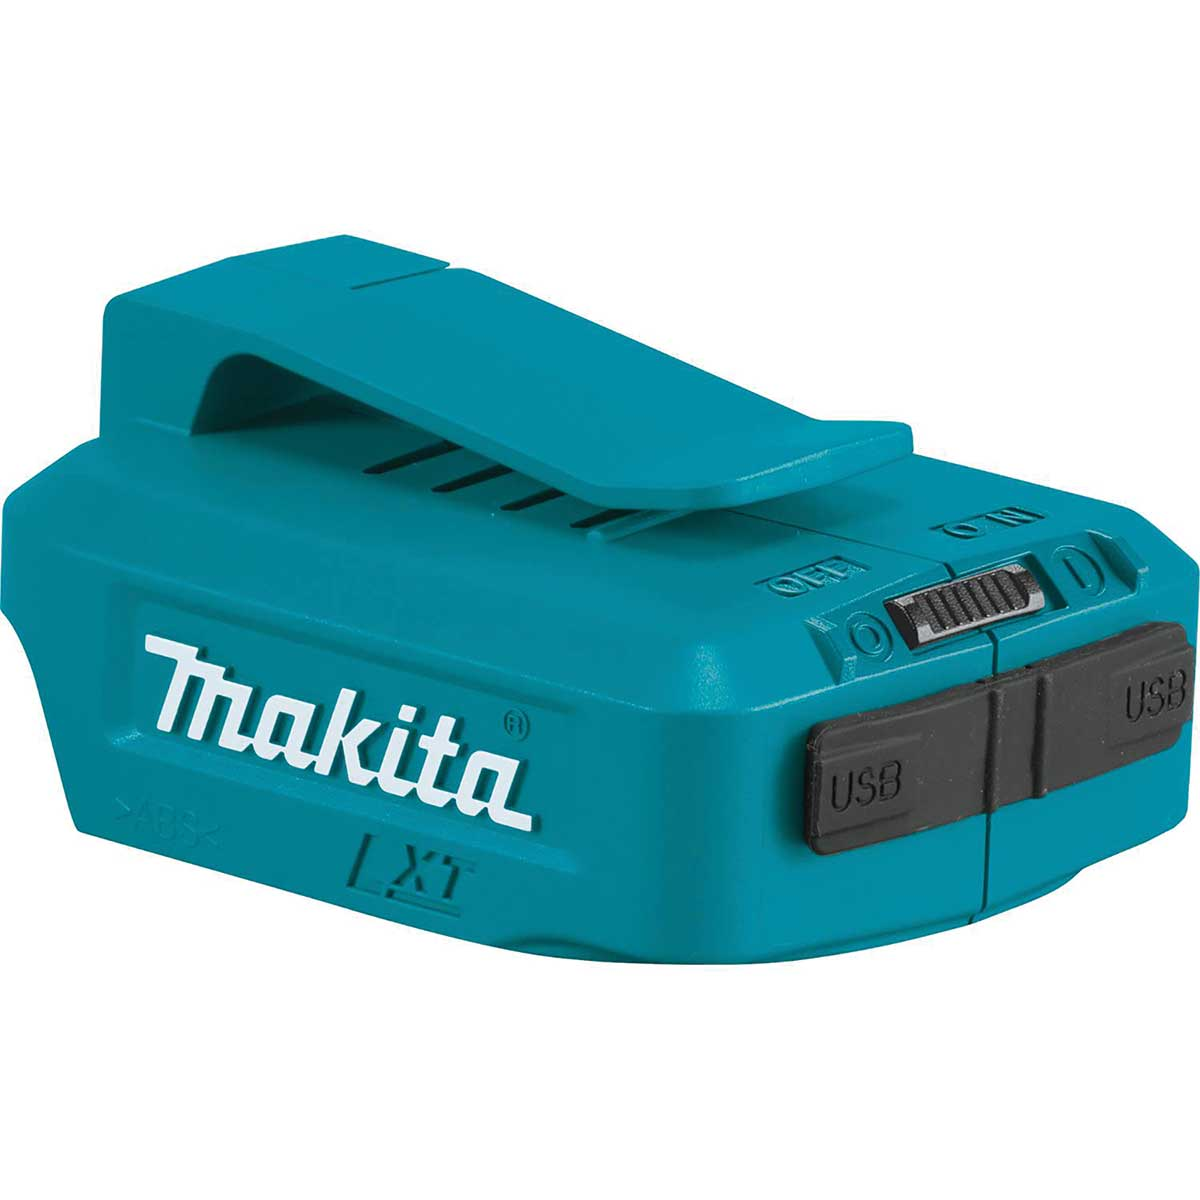 Makita ADP05 18V LXT® Lithium-Ion Cordless Power Source, Power Source Only